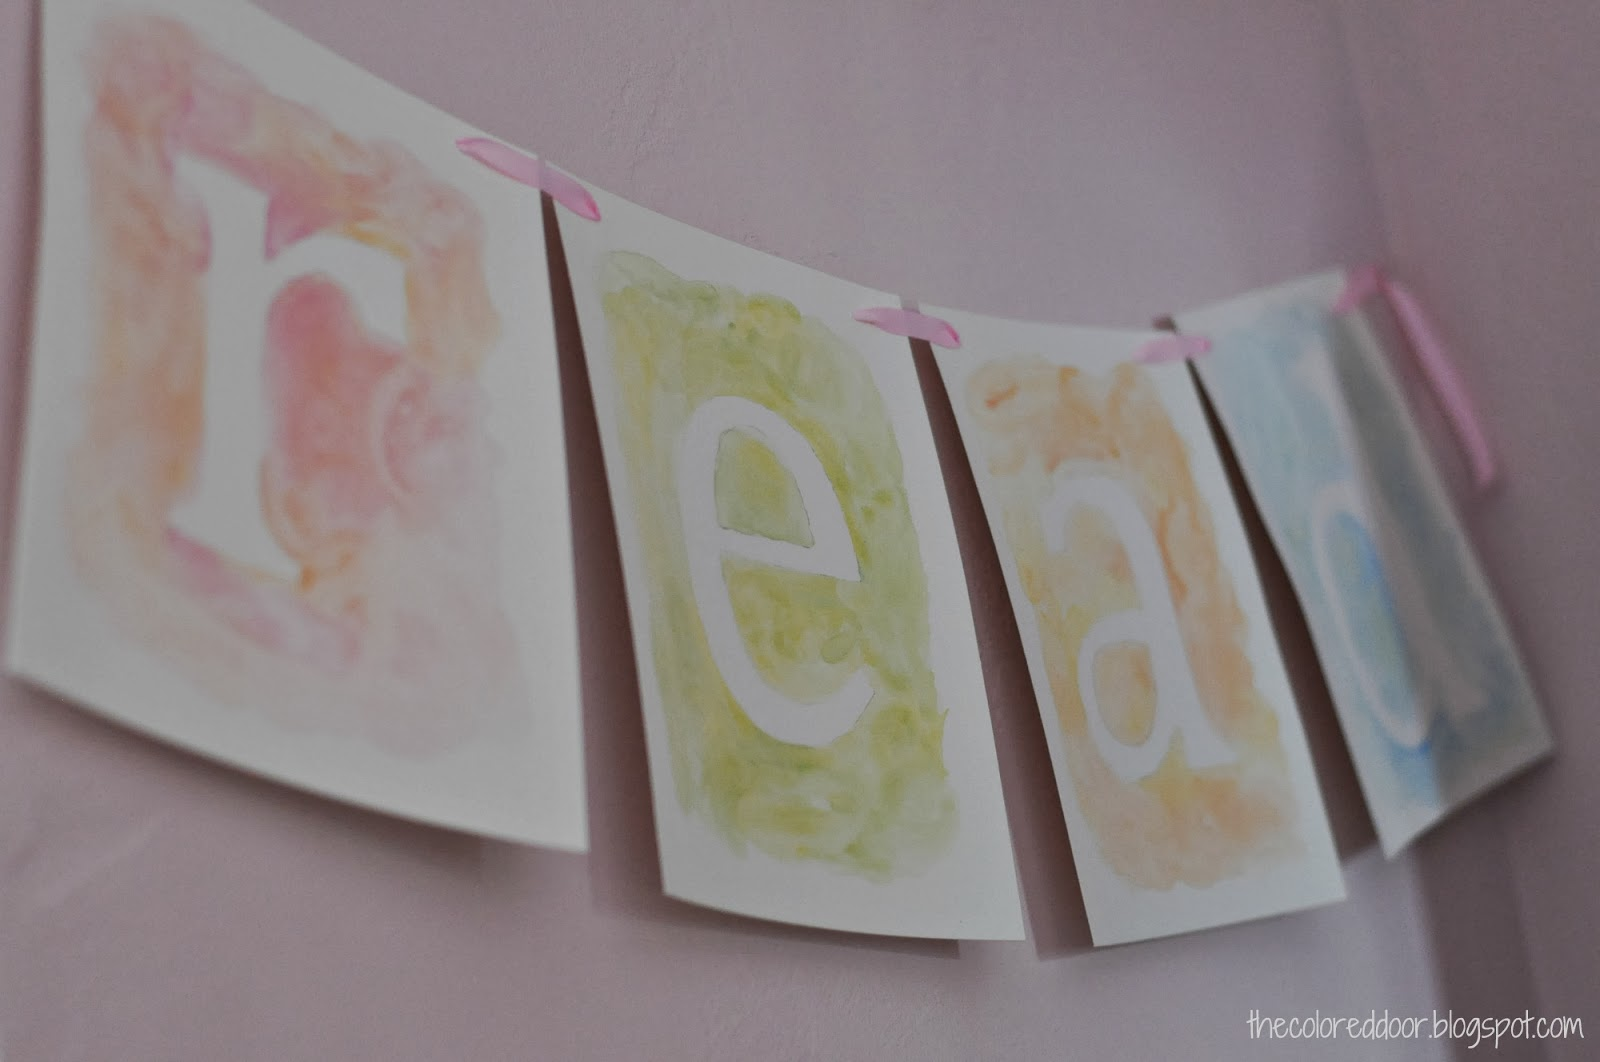 water color letters - the colored door